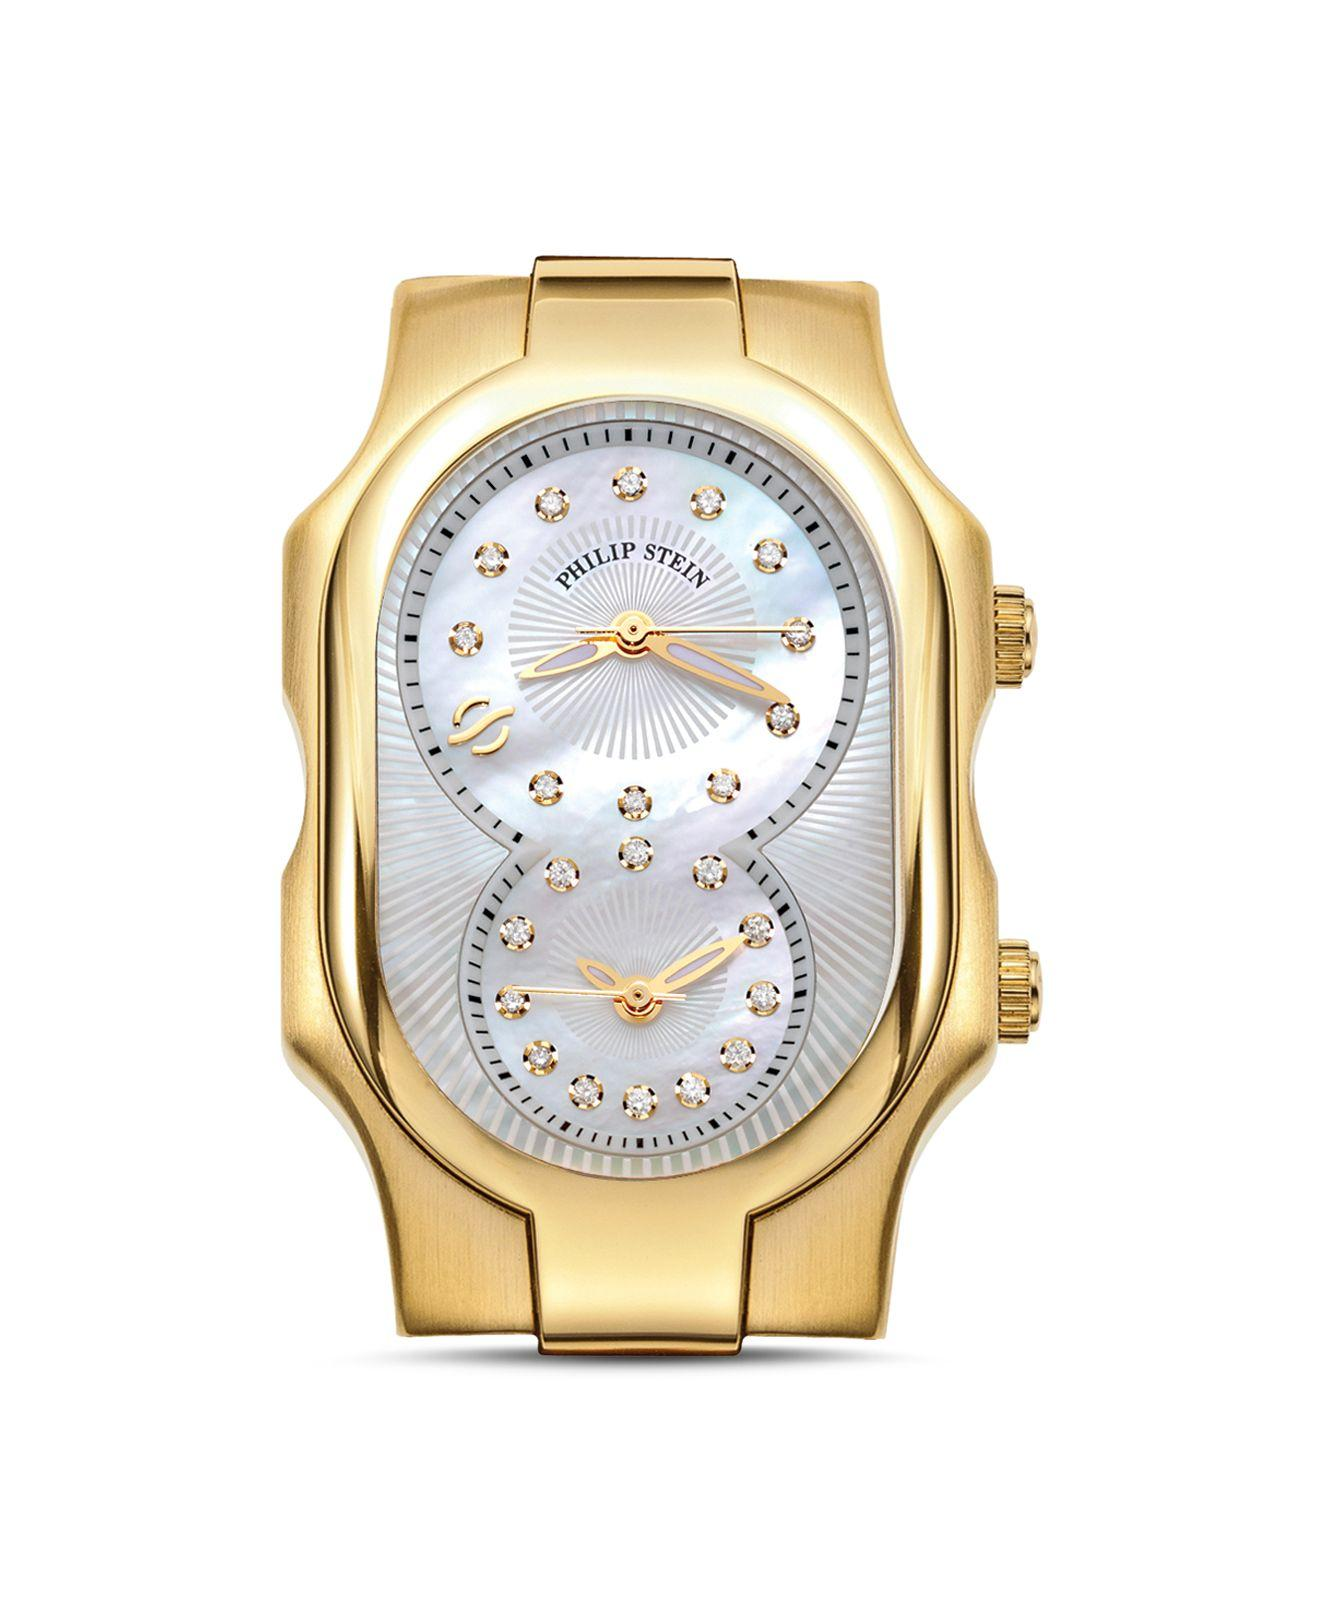 Lyst - Philip stein Signature Small Gold Ion-plated ...